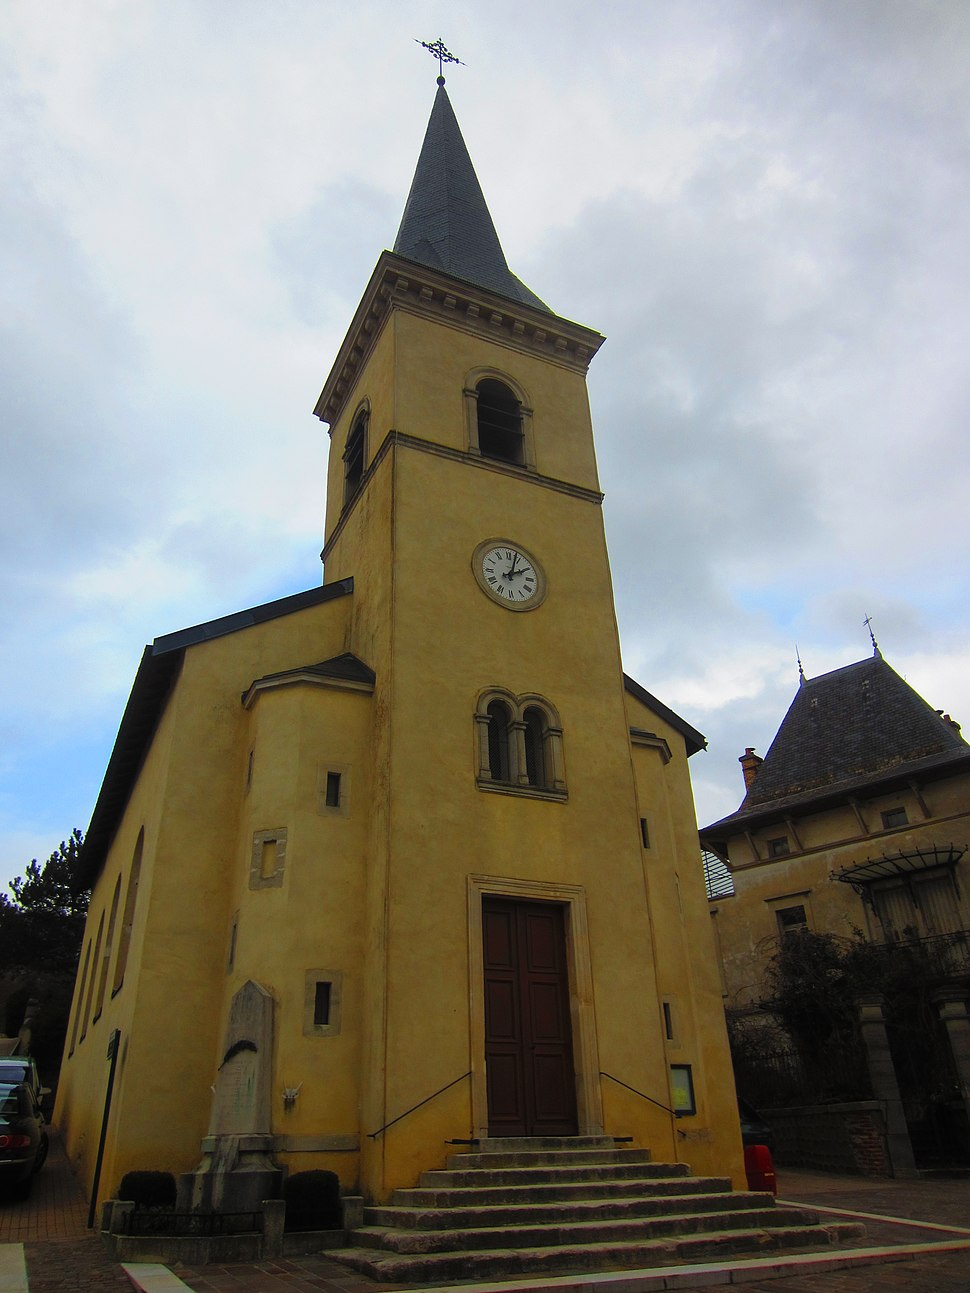 The church in Dommartemont